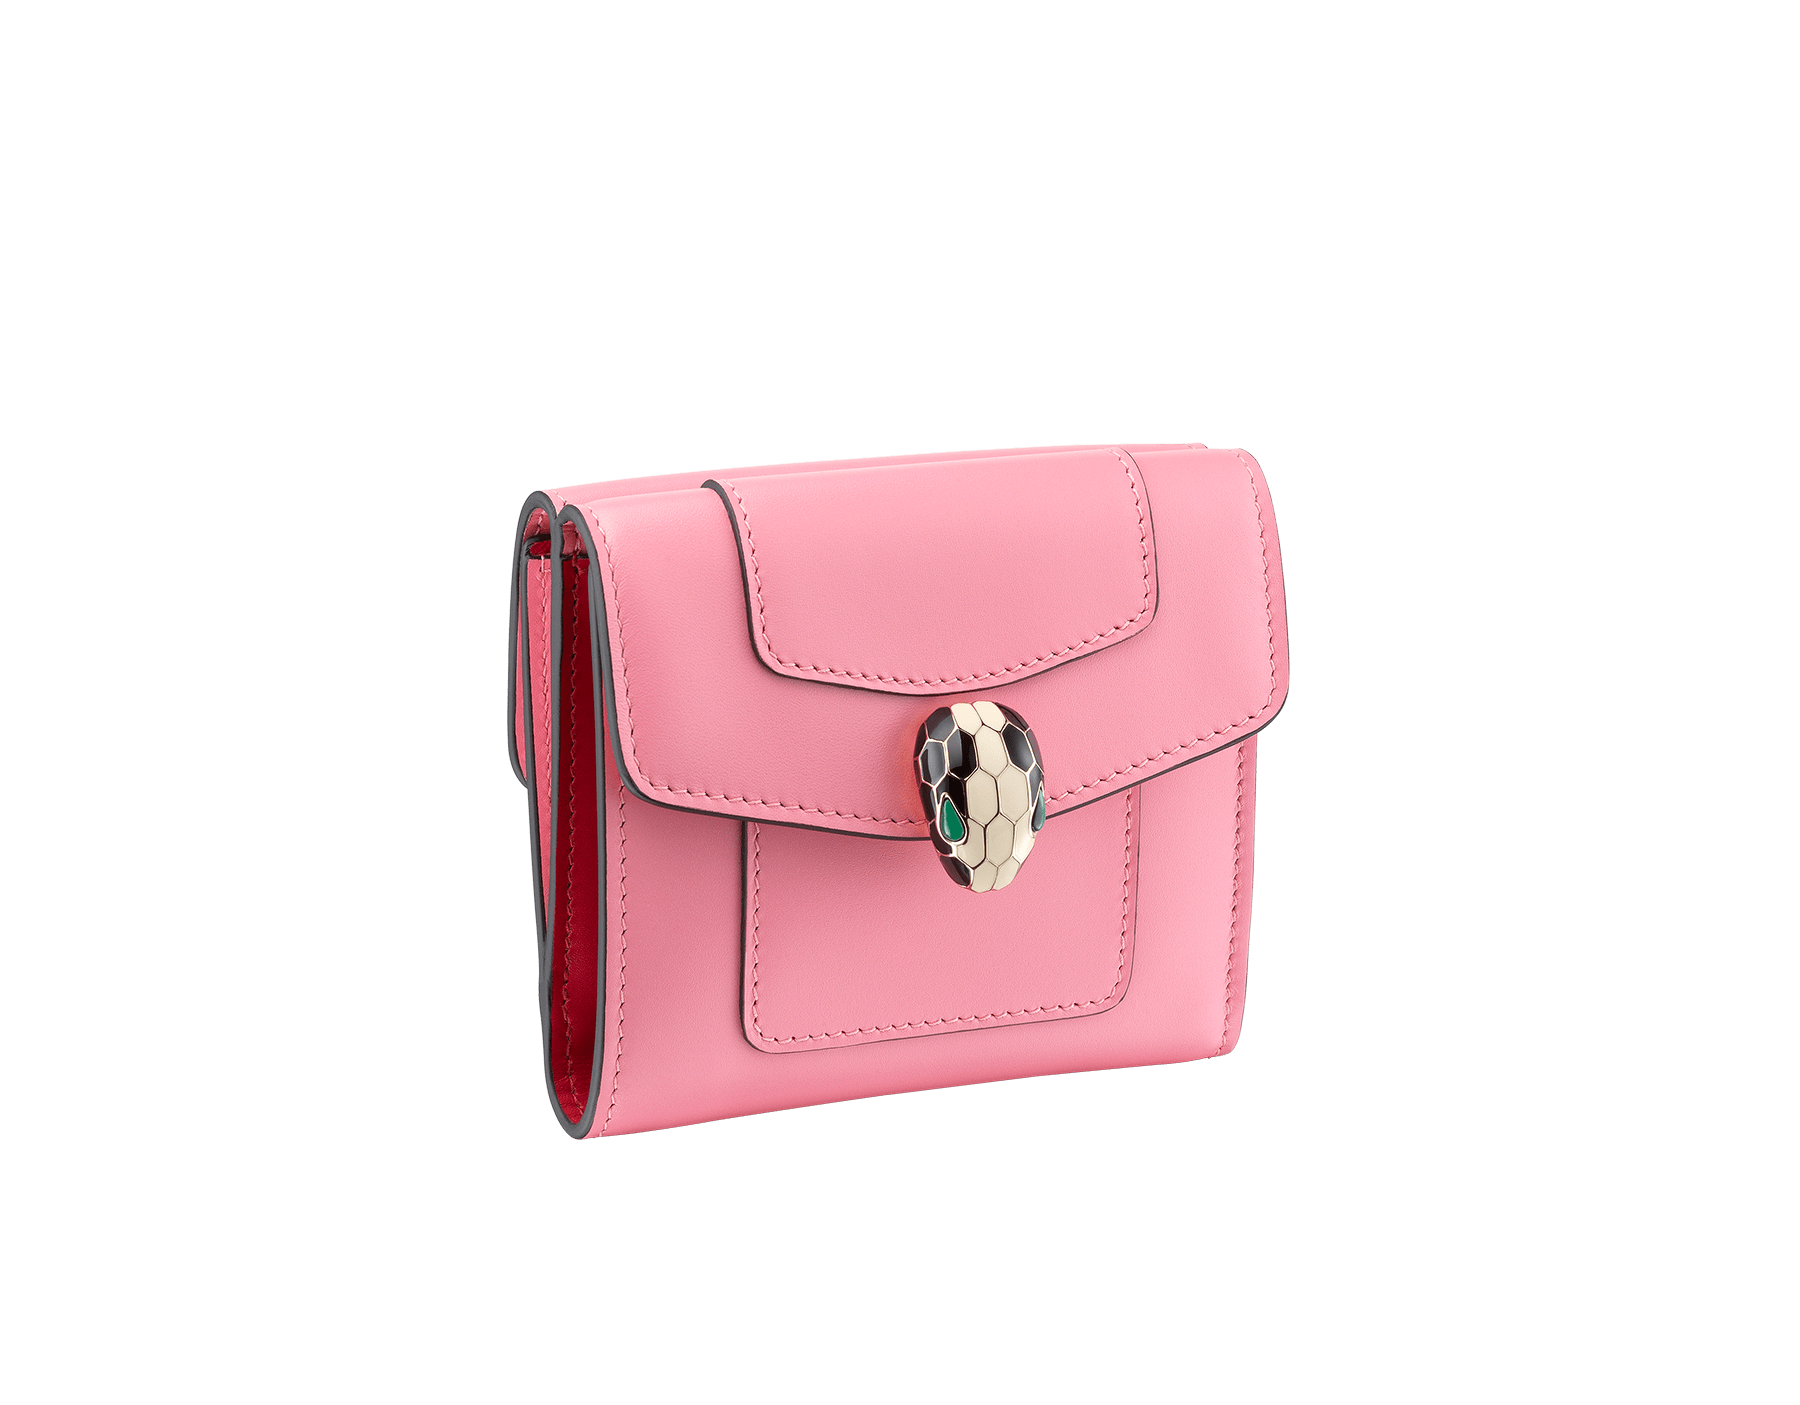 Serpenti Forever square compact wallet in candy quartz and carmine jasper calf leather. Iconic snakehead charm in black and white enamel, with green malachite eyes 287165 image 1